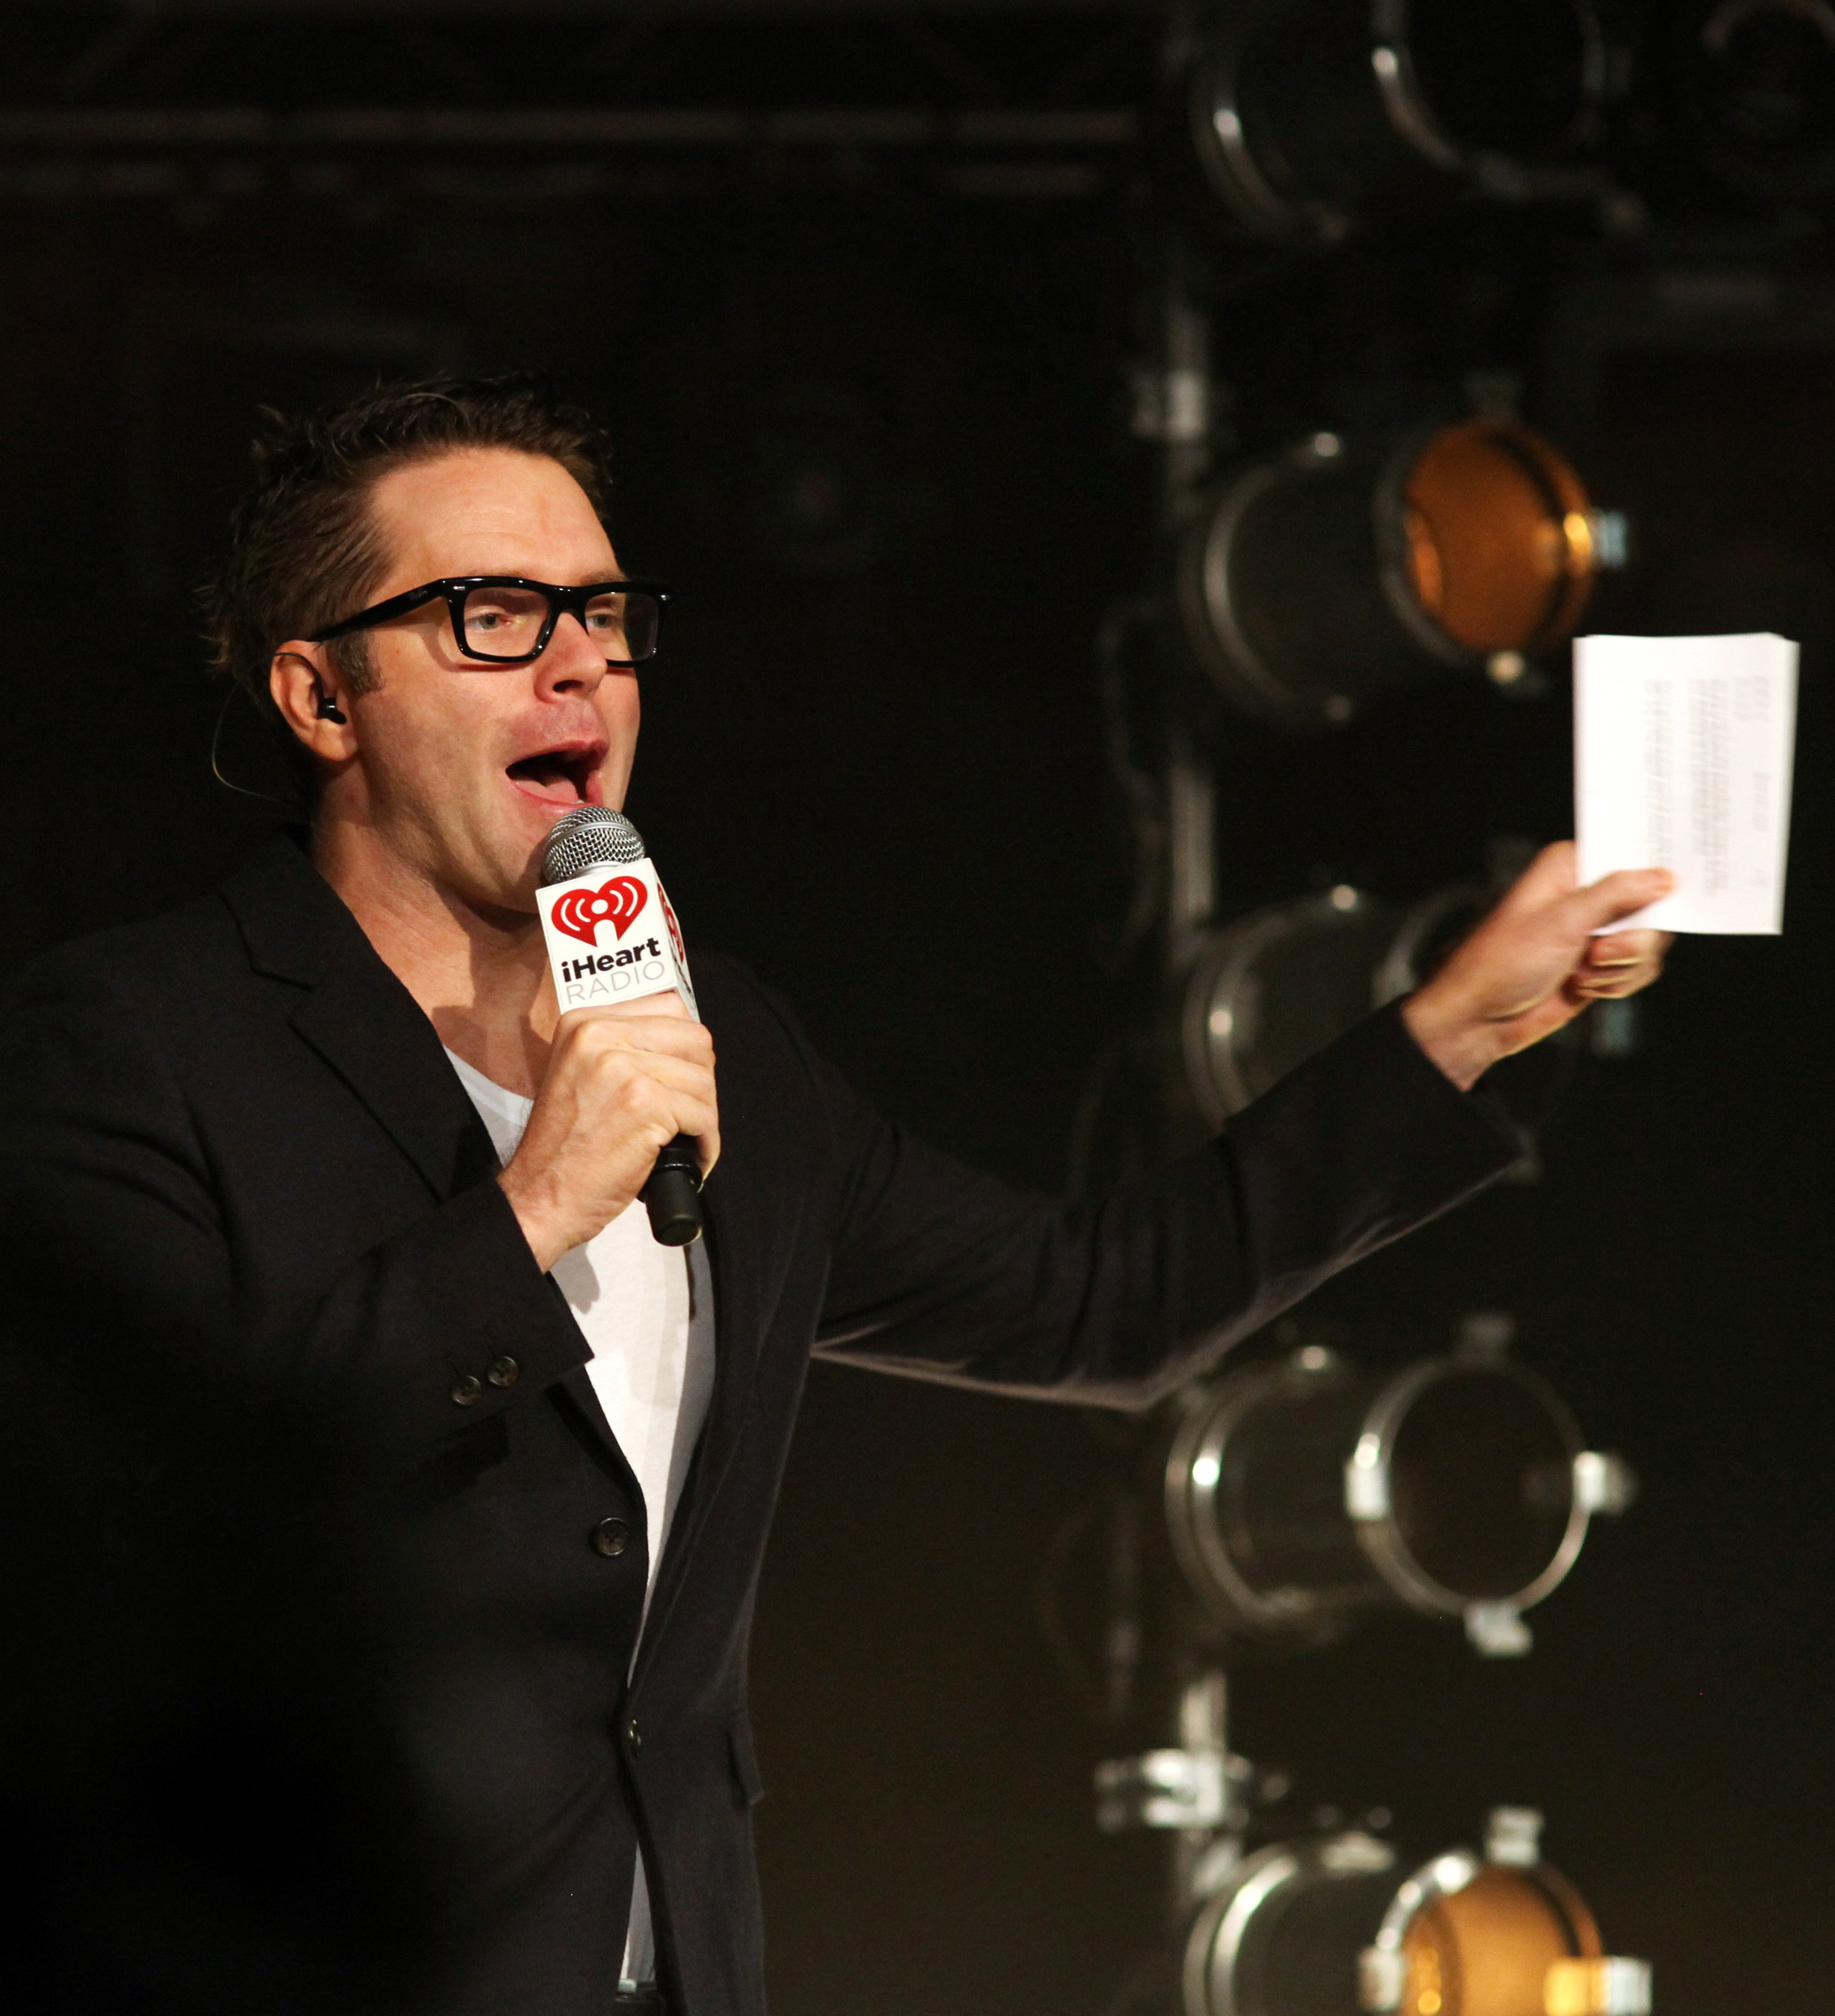 Bobby Bones at the iHeartRadio Theater on August 28, 2014 in New York City, for Brad Paisley's album release party . | Photo: Lisa Gansky ,CC BY-SA 2.0 / WikiMedia